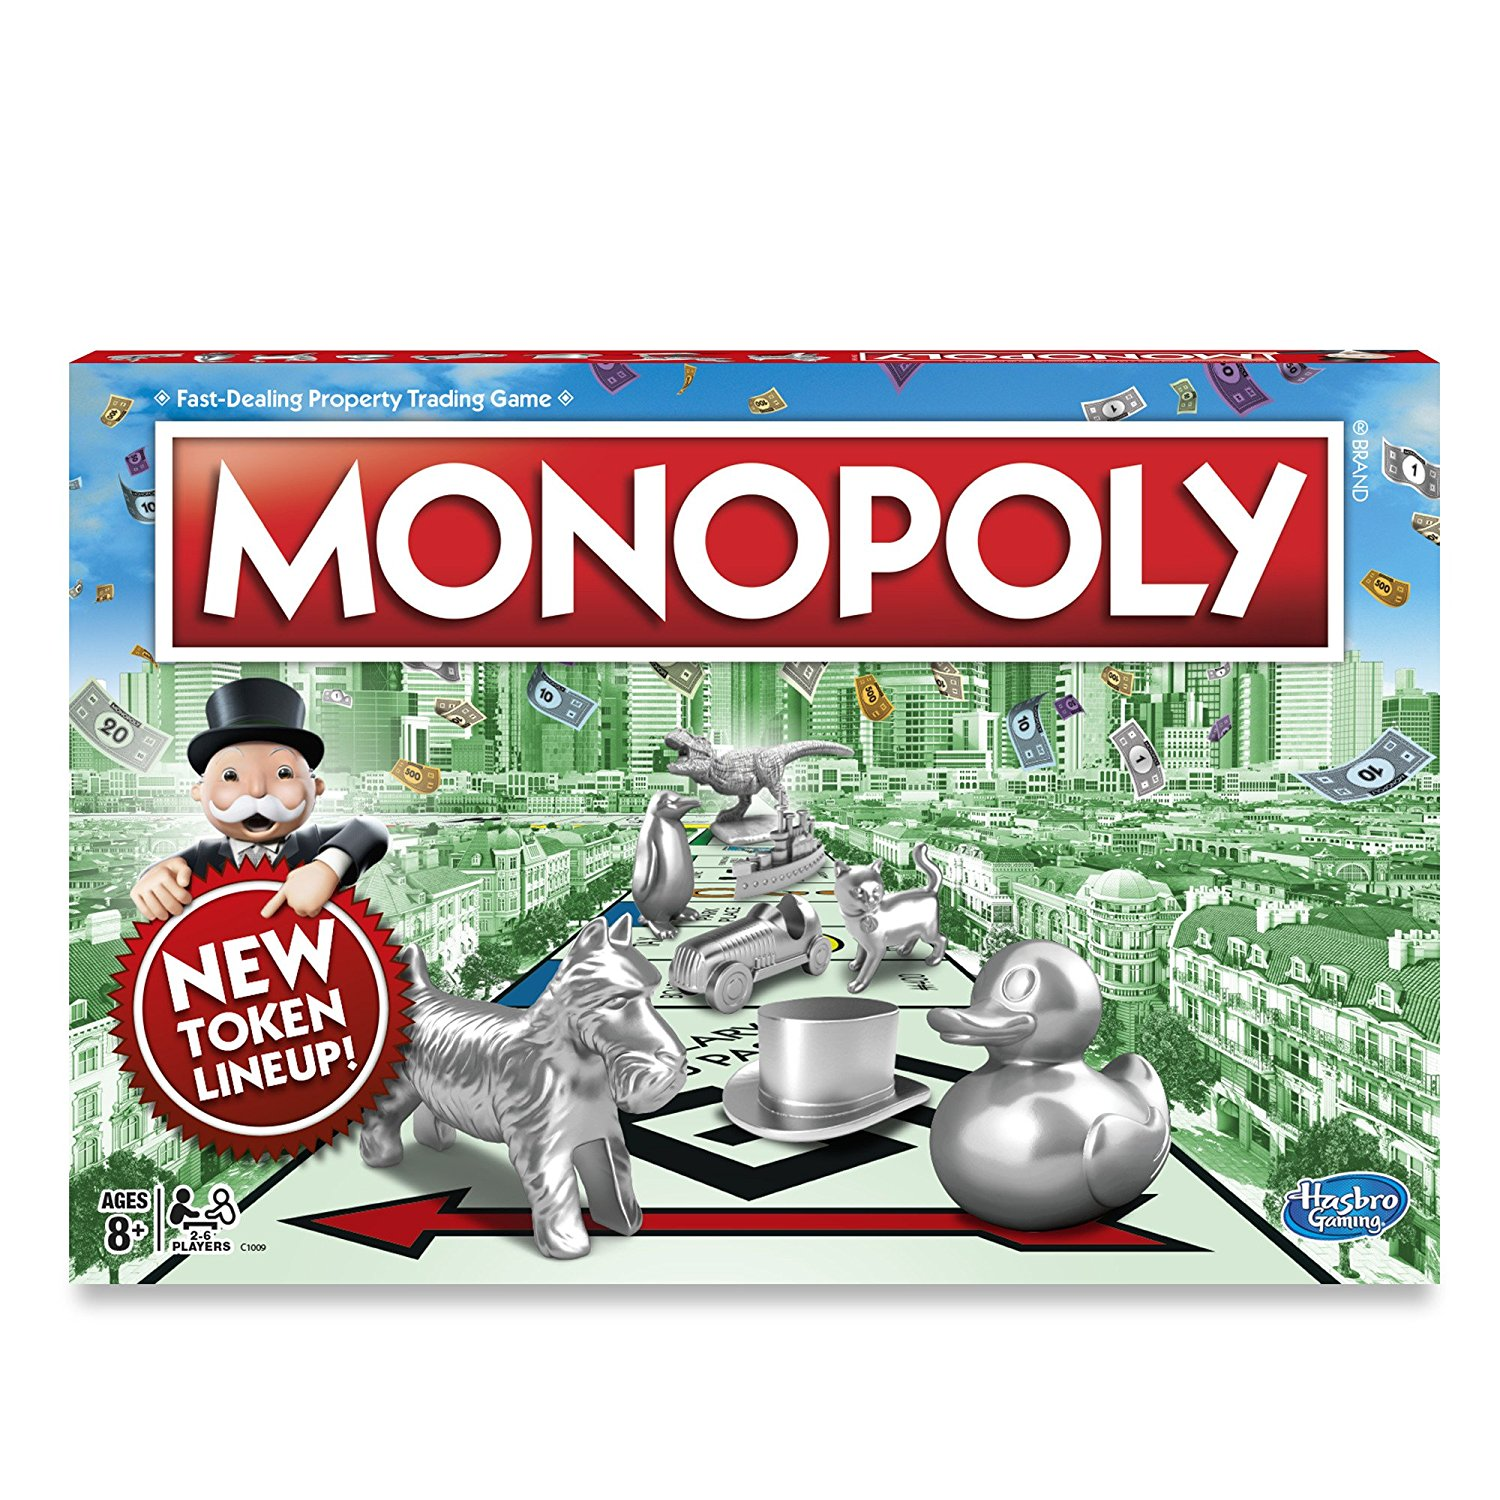 Monopoly Classic Game, Buy, sell, dream and scheme your way to riches By Hasbro by